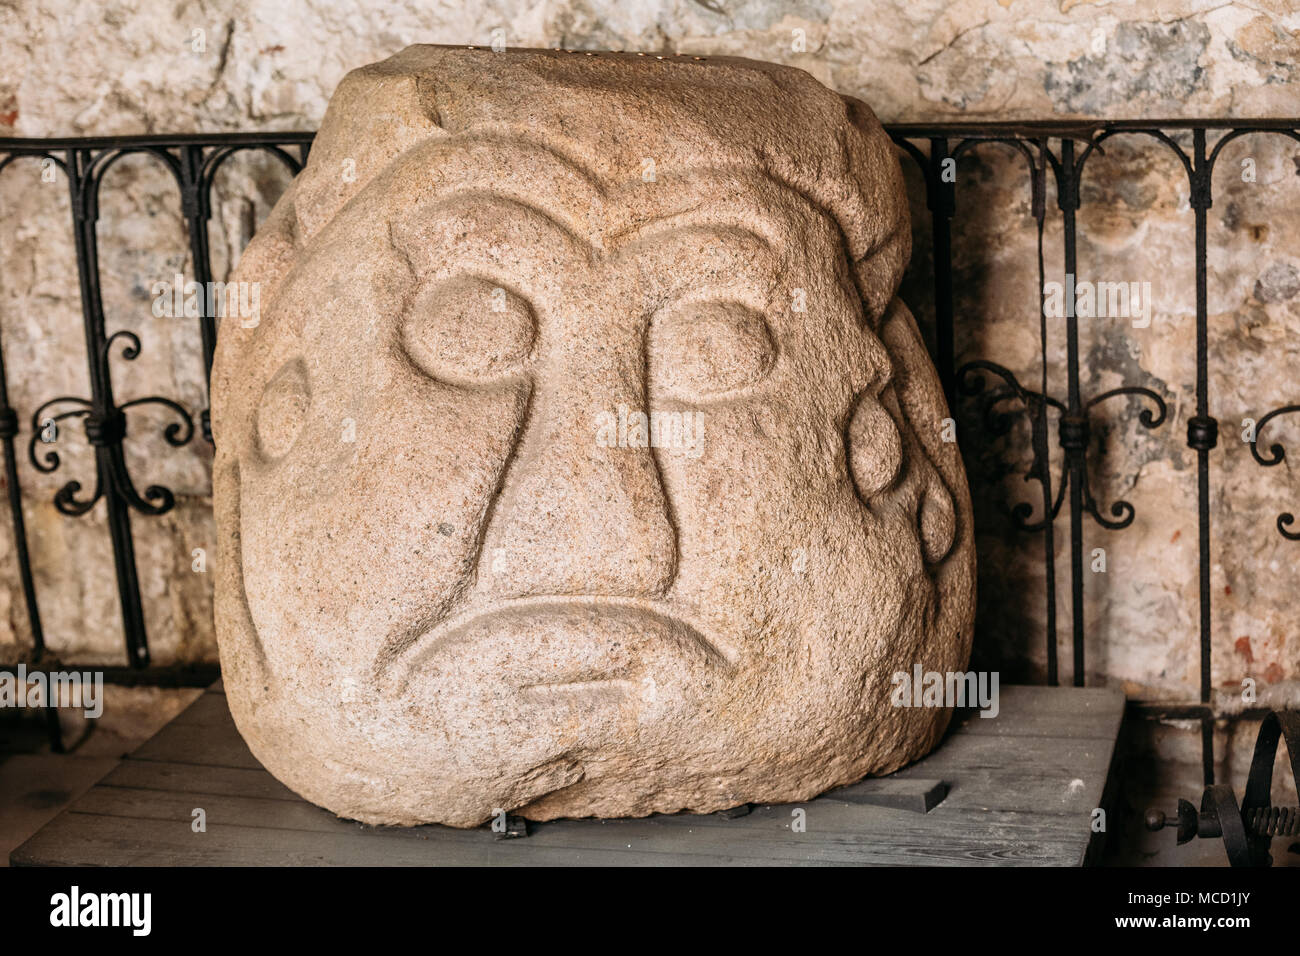 Riga, Latvia - July 2, 2016: Salaspils Stone Head Is Stone Statue Of Ancient Slavic Idol In Museum Of Dome Cathedral. Monument Has A Height - 0,83 M,  - Stock Image